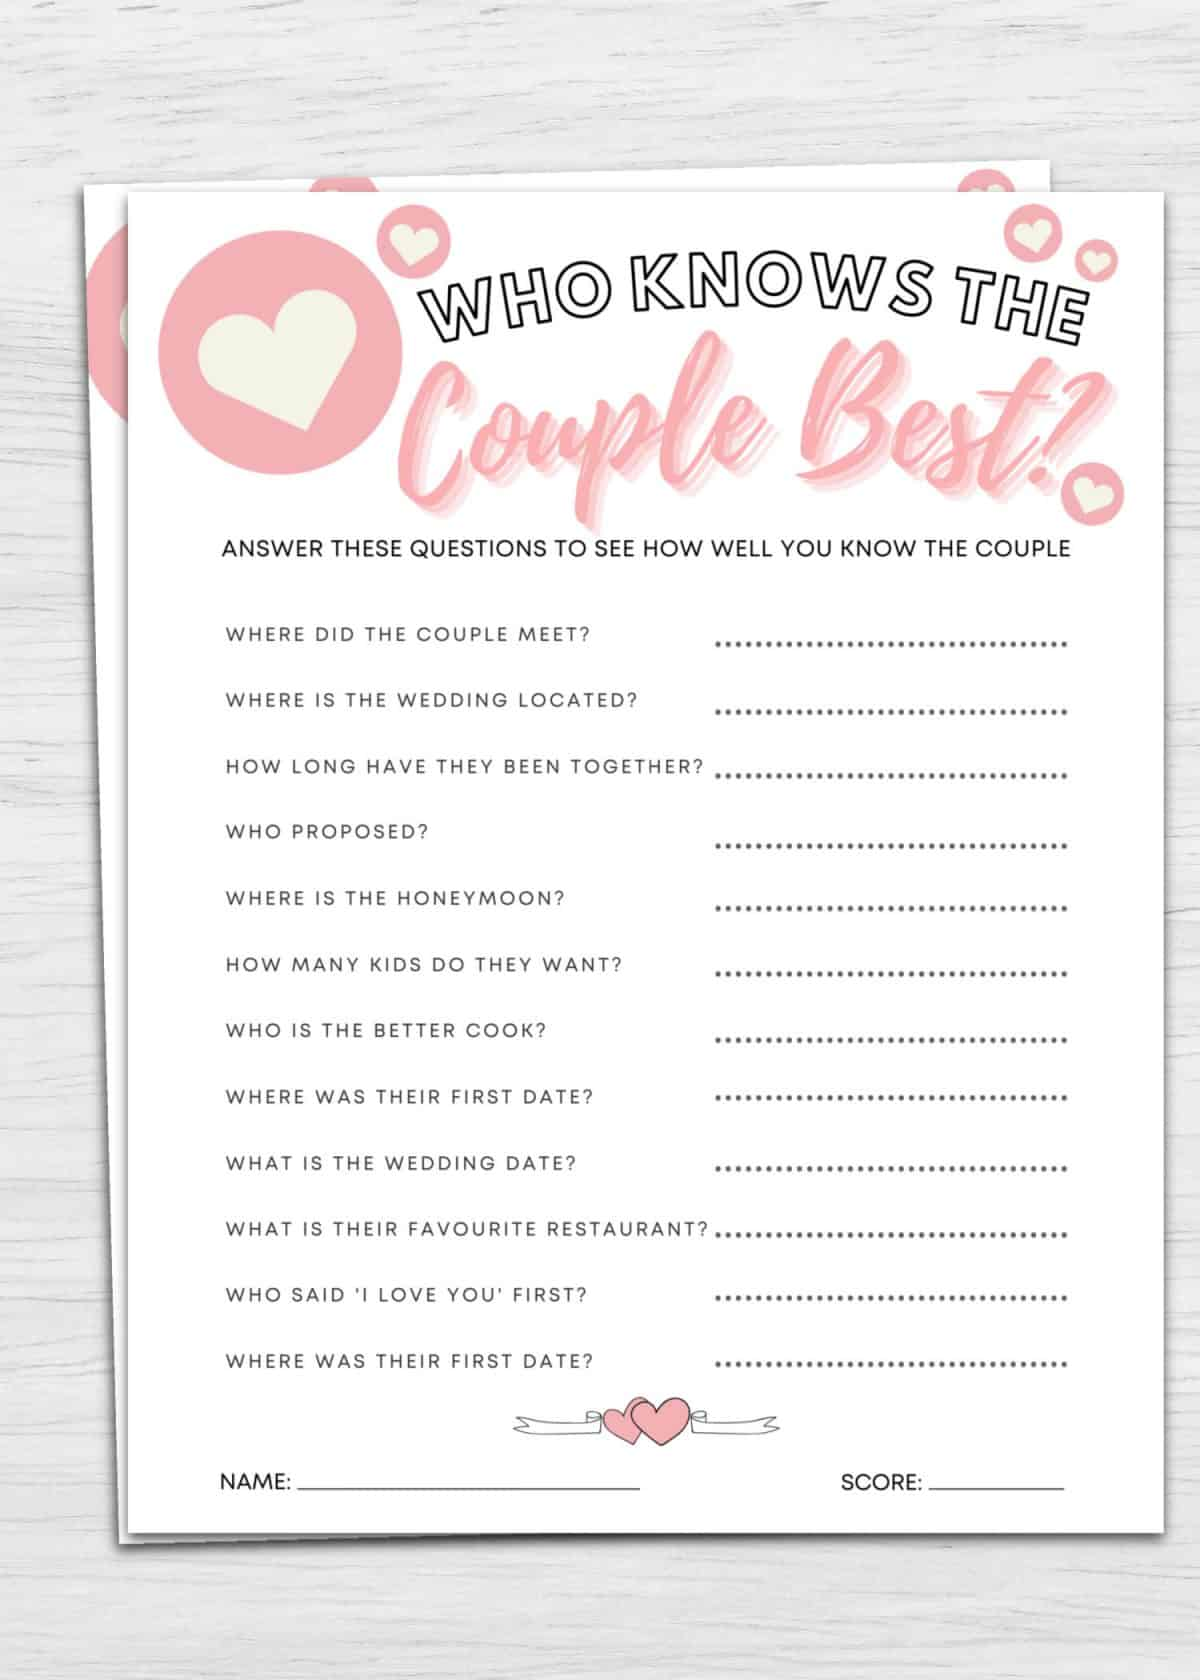 who knows the couple best printable